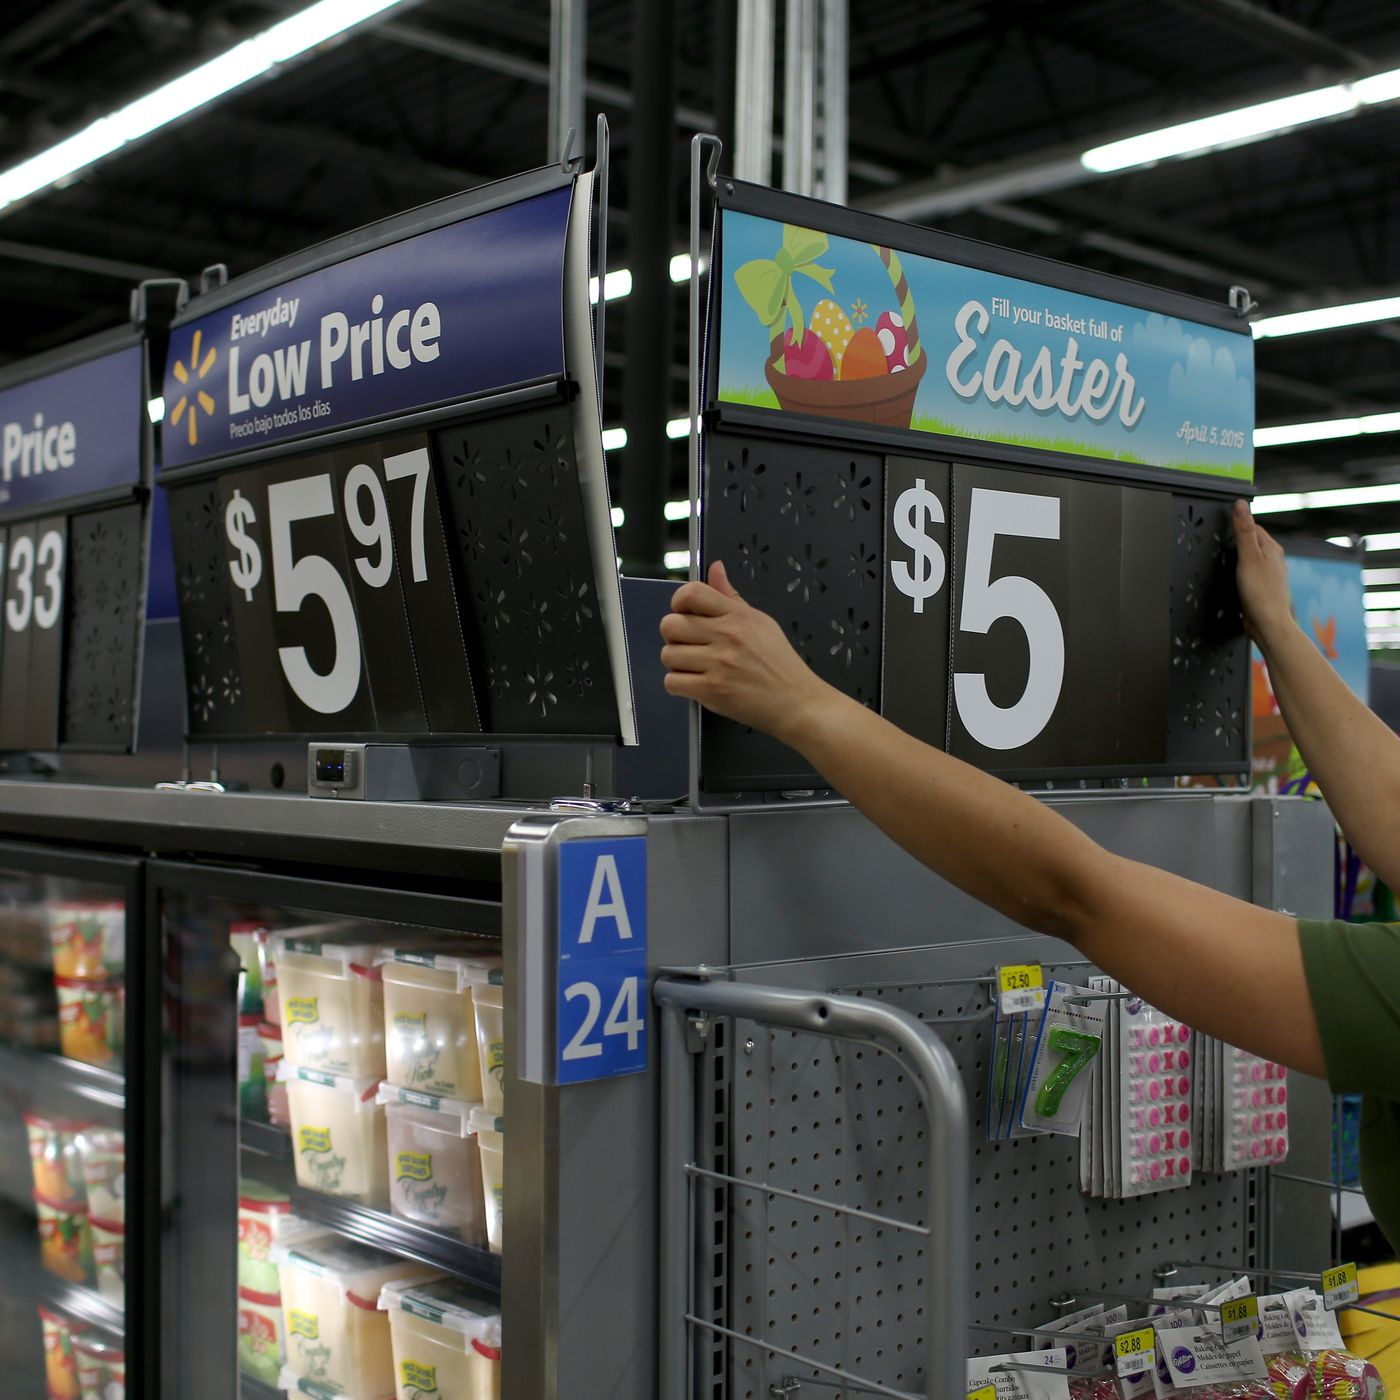 Walmart says its new robots will make human employees